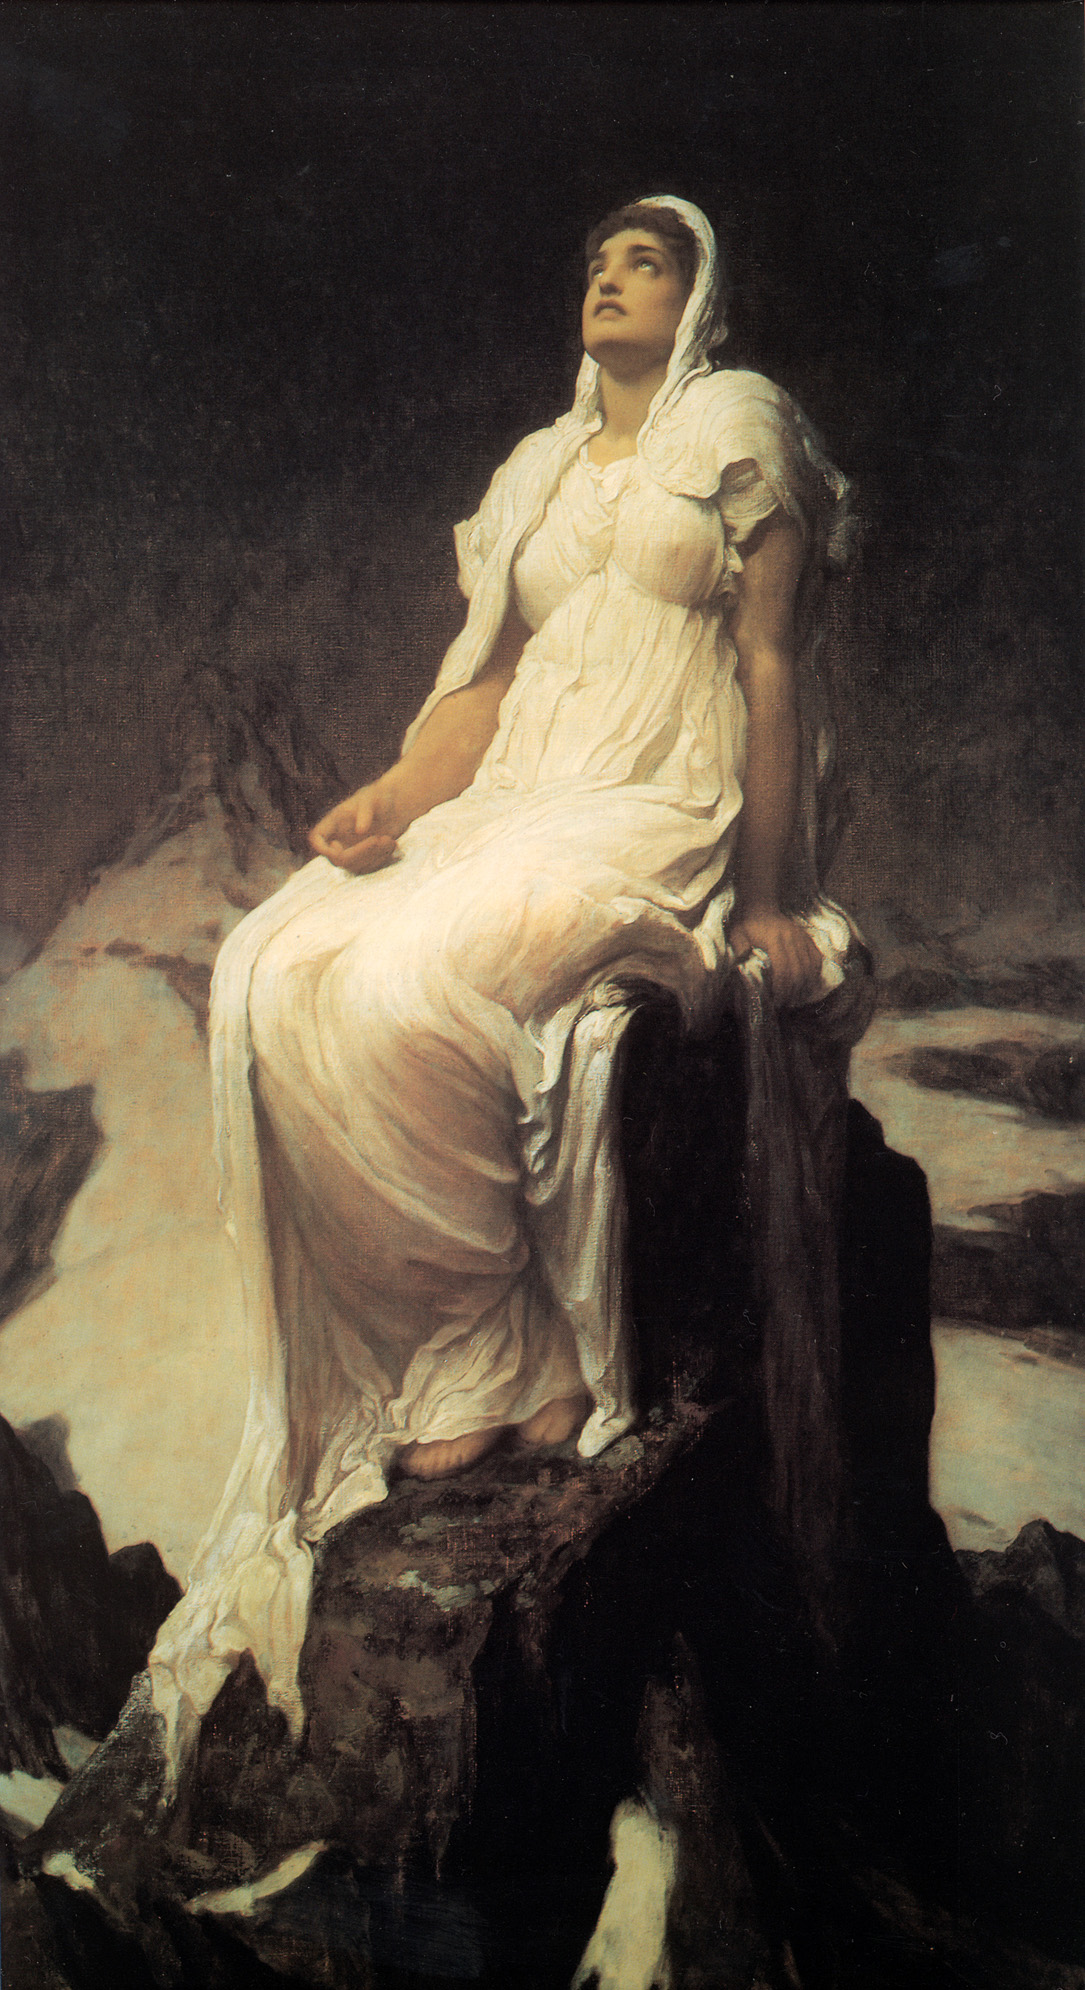 Lord Frederick Leighton (1830-1896) The Spirit of the Summit Oil on canvas, c1894 101.6 x 198.1 cm (3' 4